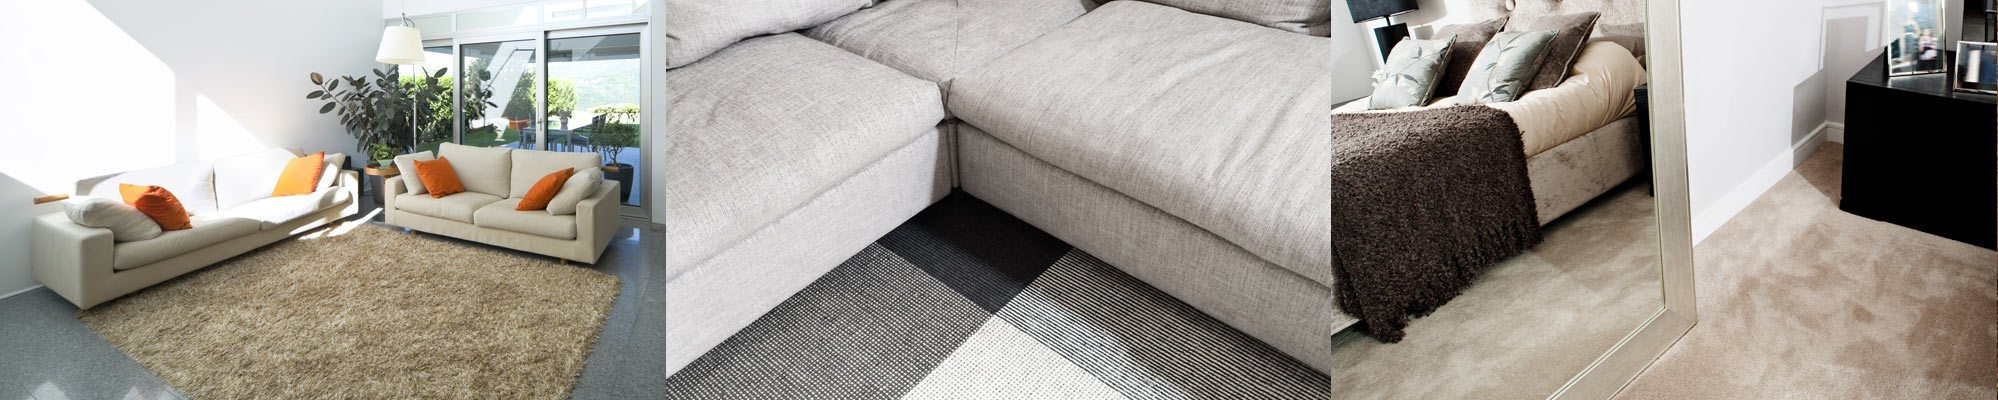 Carpets installed by our floor specialists in Portsmouth